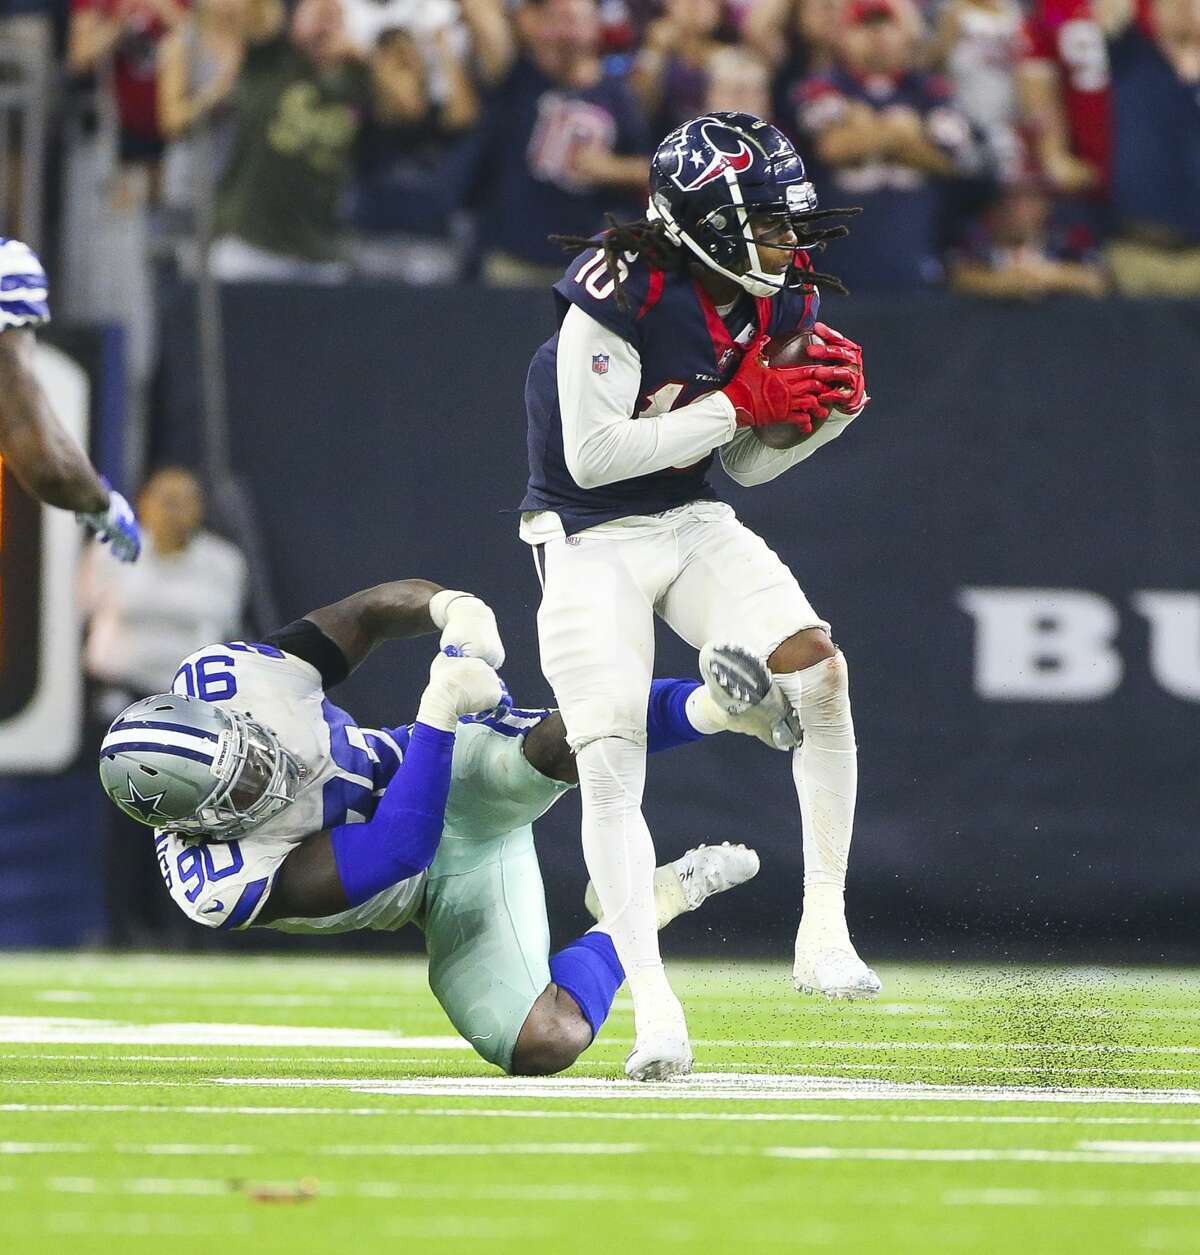 Houston Texans wide receiver DeAndre Hopkins Opposing team's fans say he should get called for more interference penalties. We say they are just jealous.